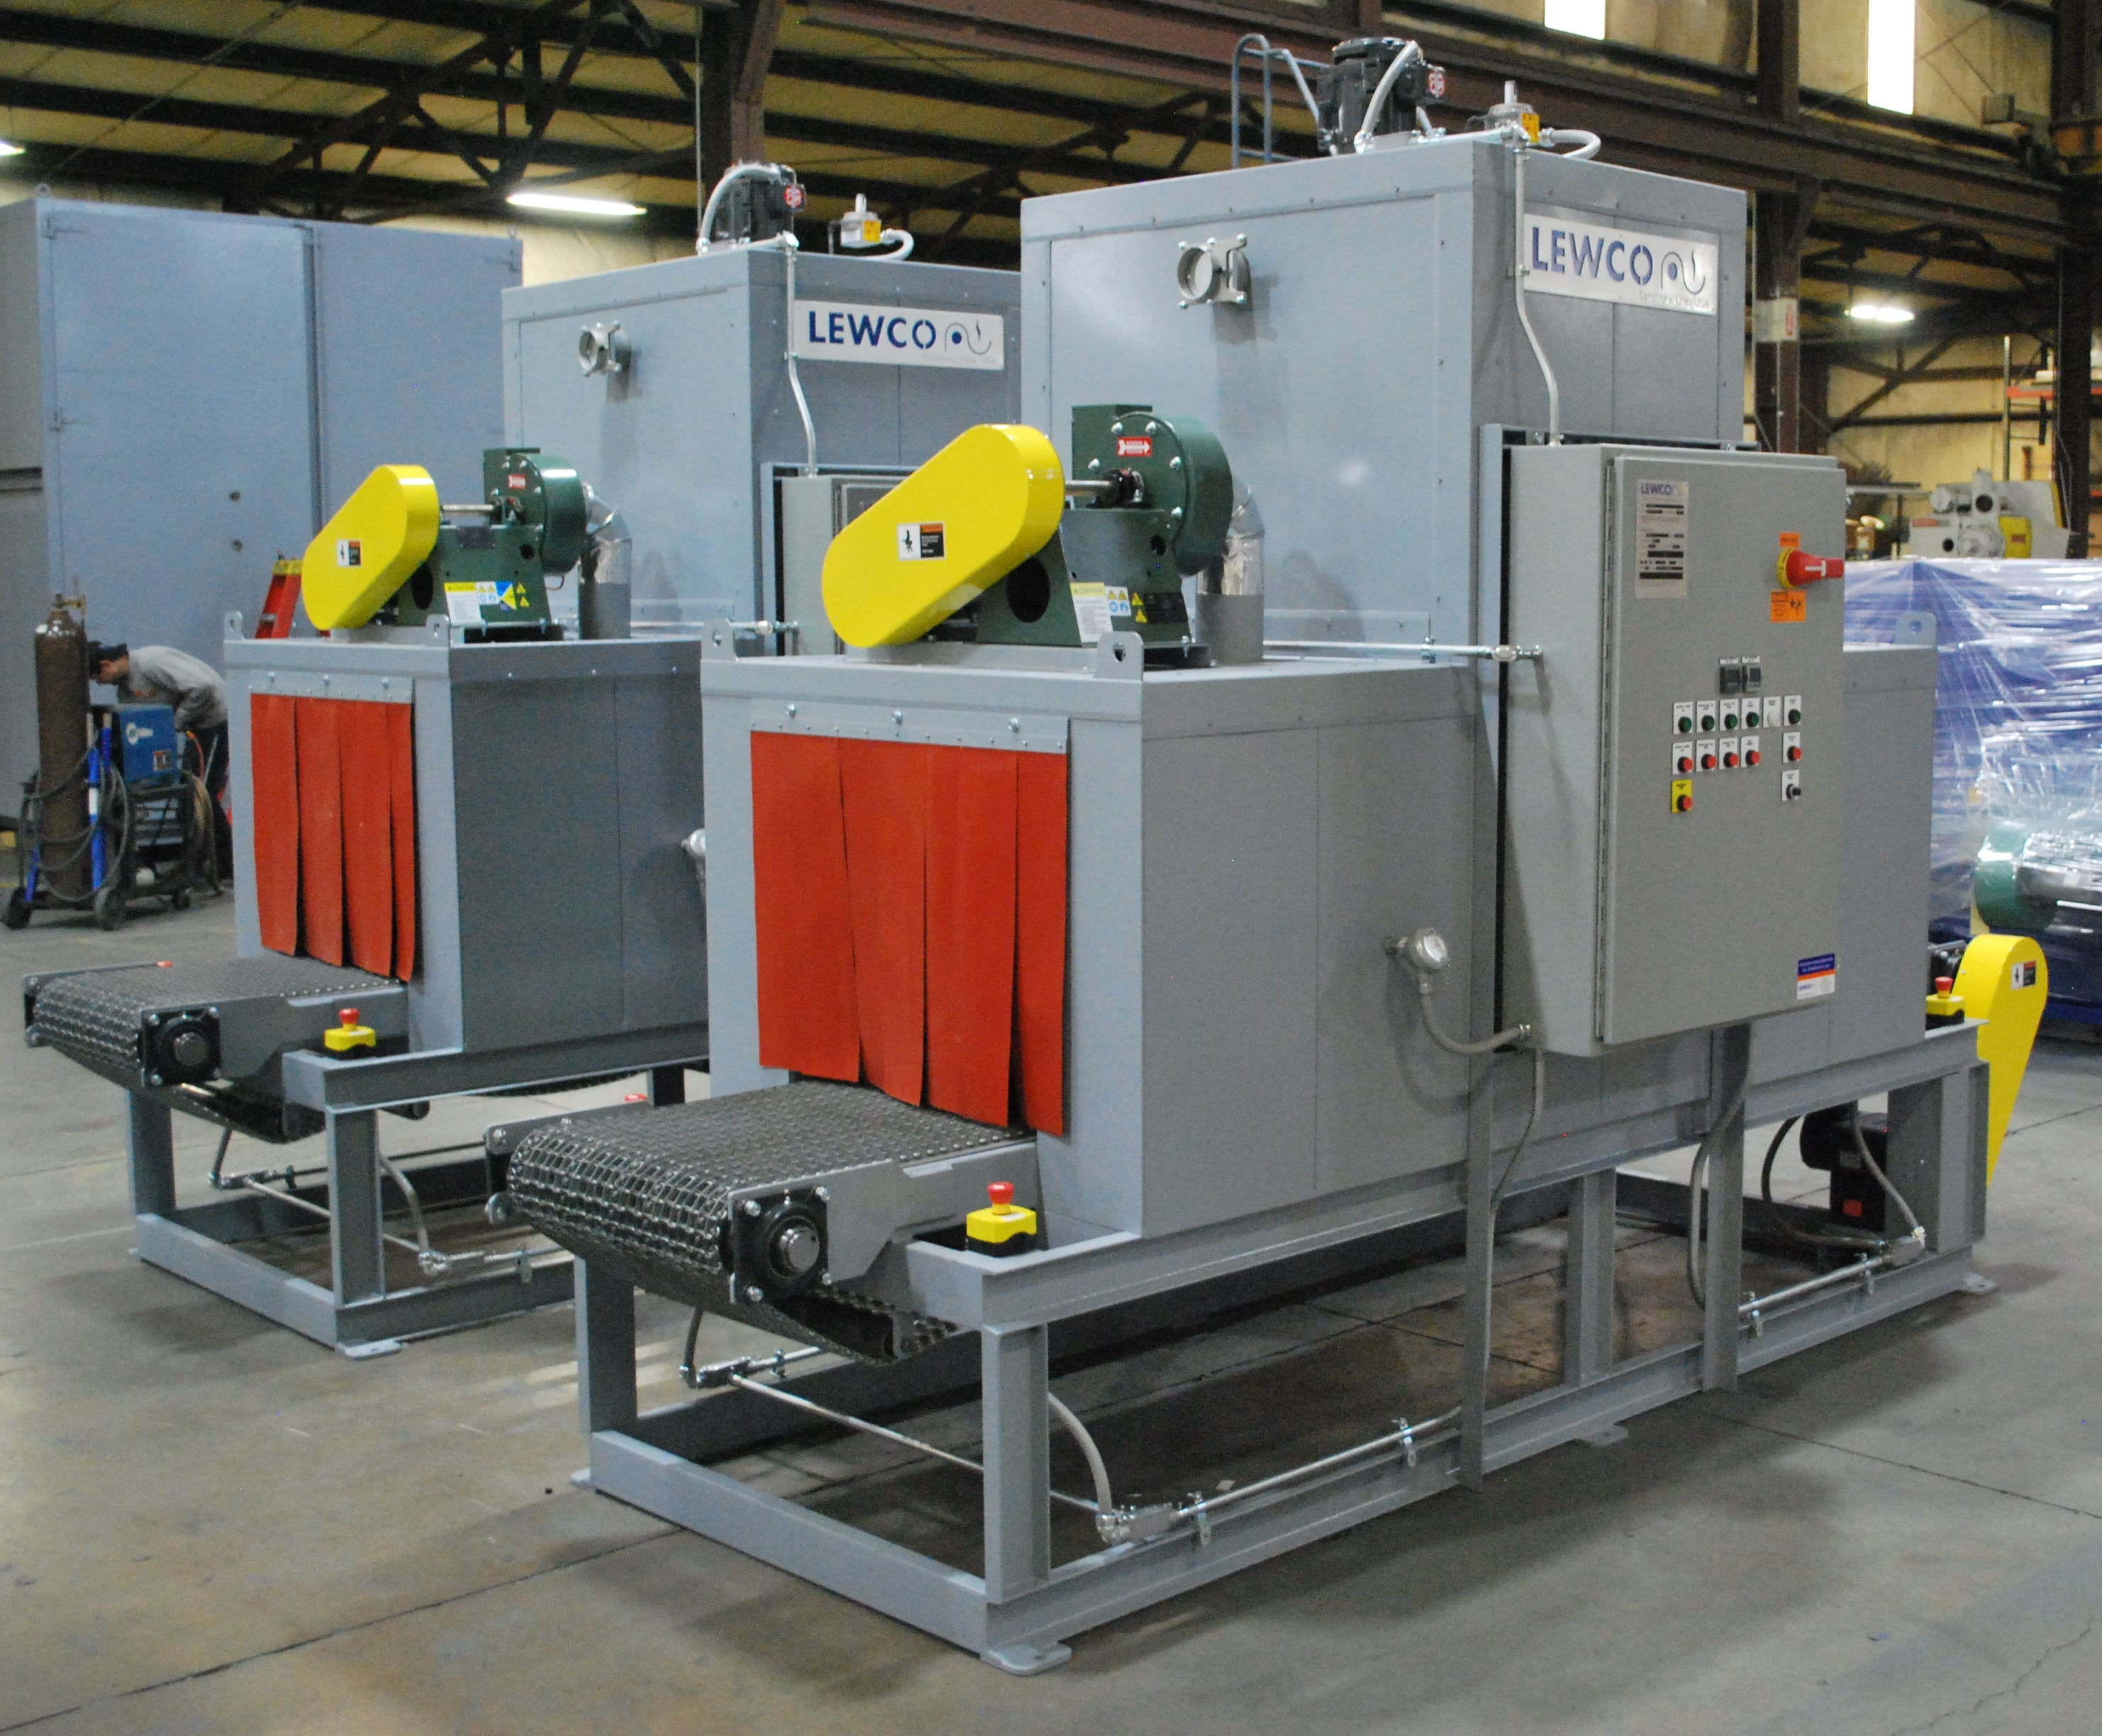 LEWCO Designs Conveyor Ovens to Heat Treat up to 350°F